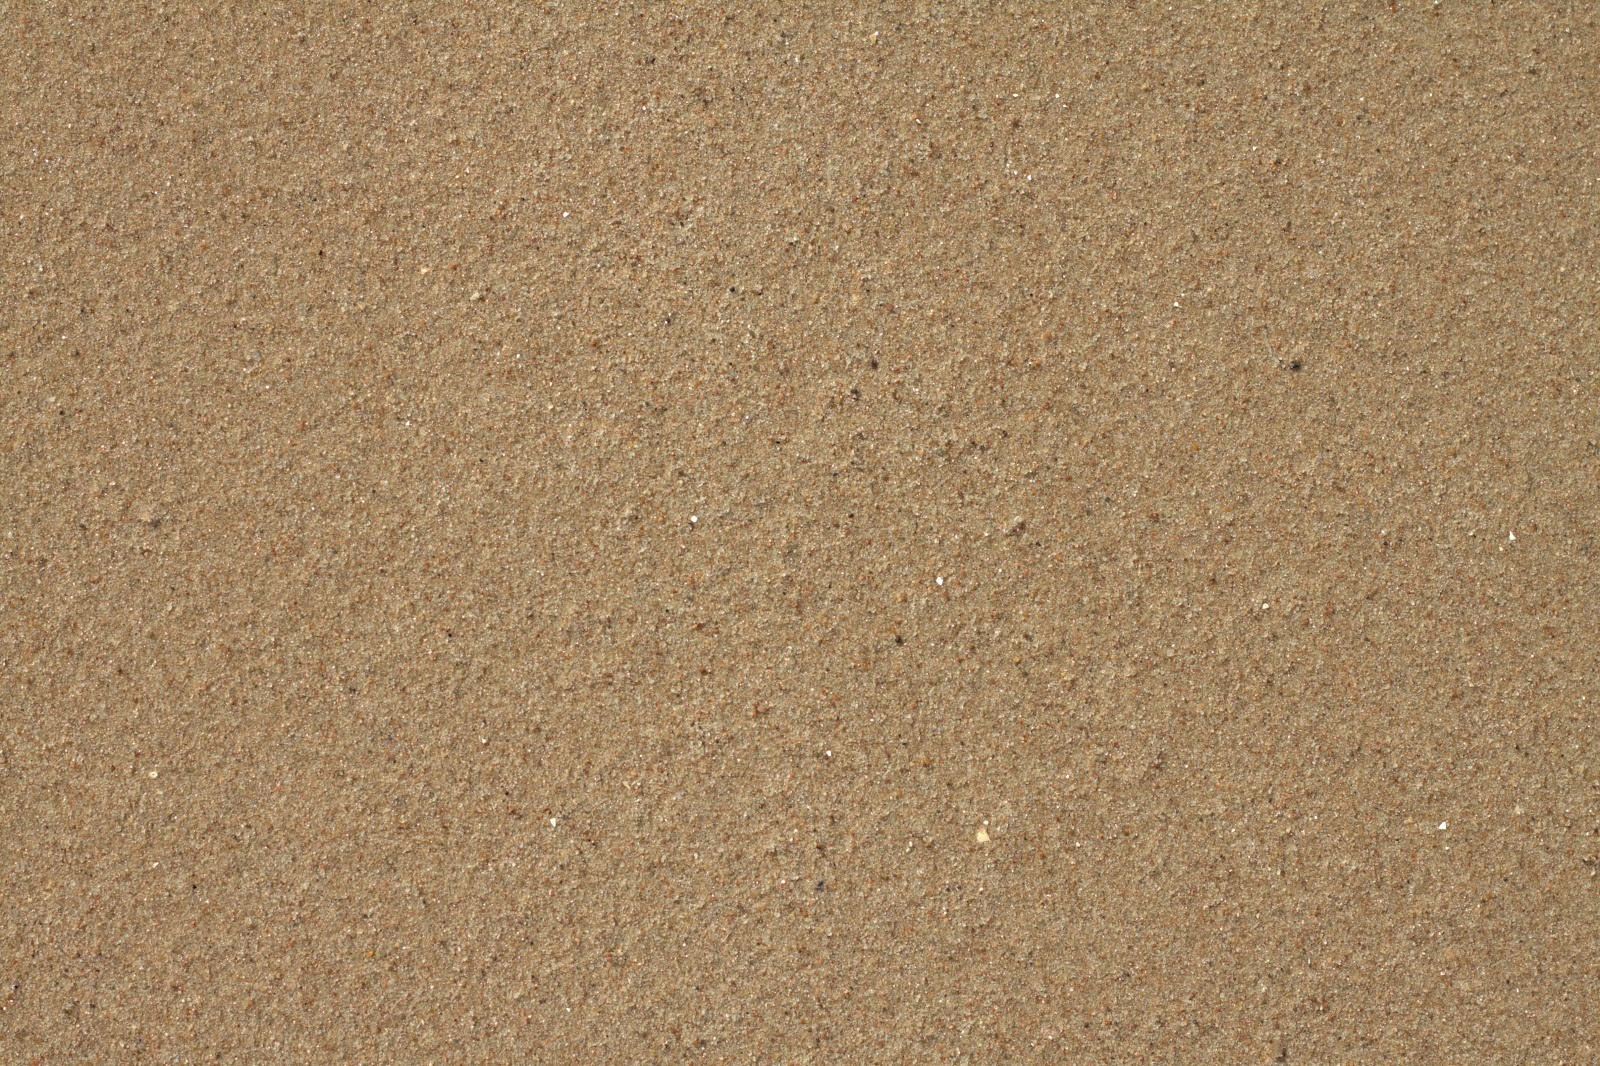 Sand beach soil ground shore desert texture ver 3